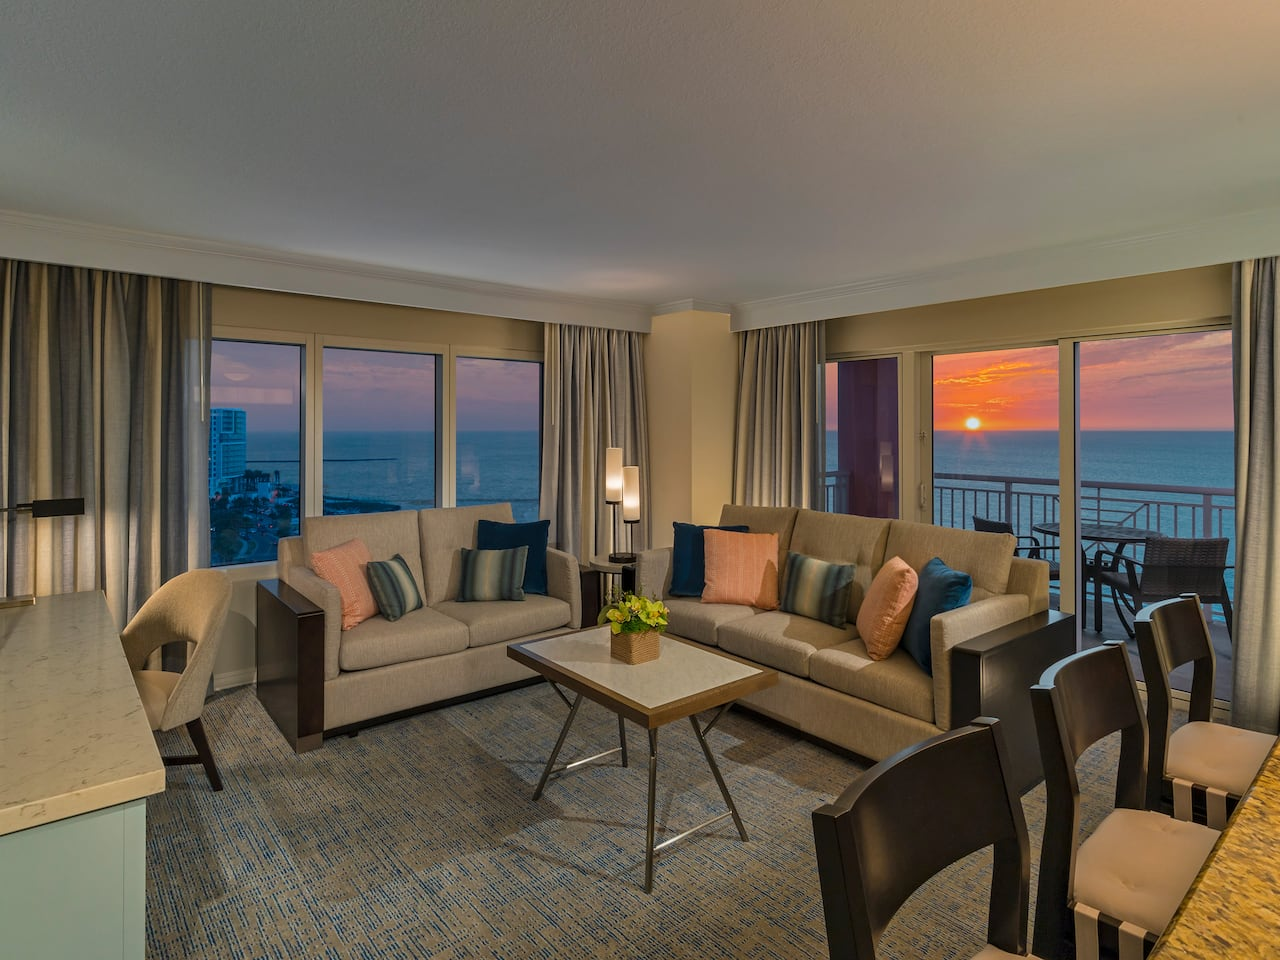 Clearwater Beach Resort Suite with Balcony at Sunset